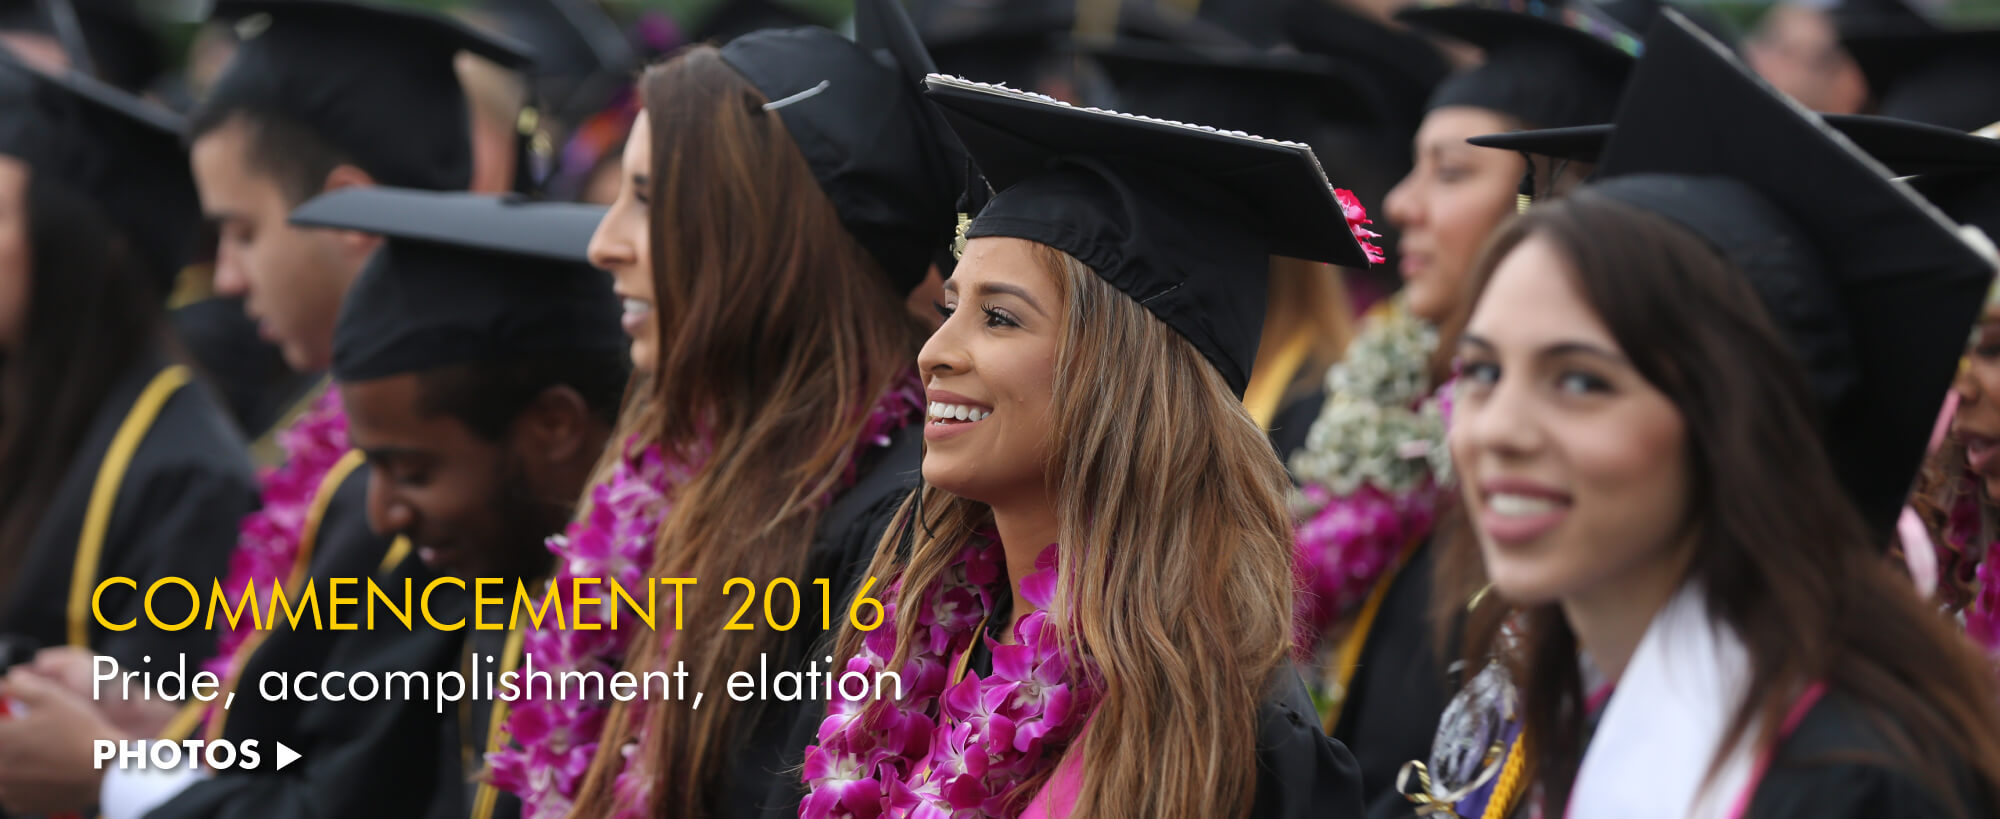 Pride, accomplishment, elation. Click for commencement photos